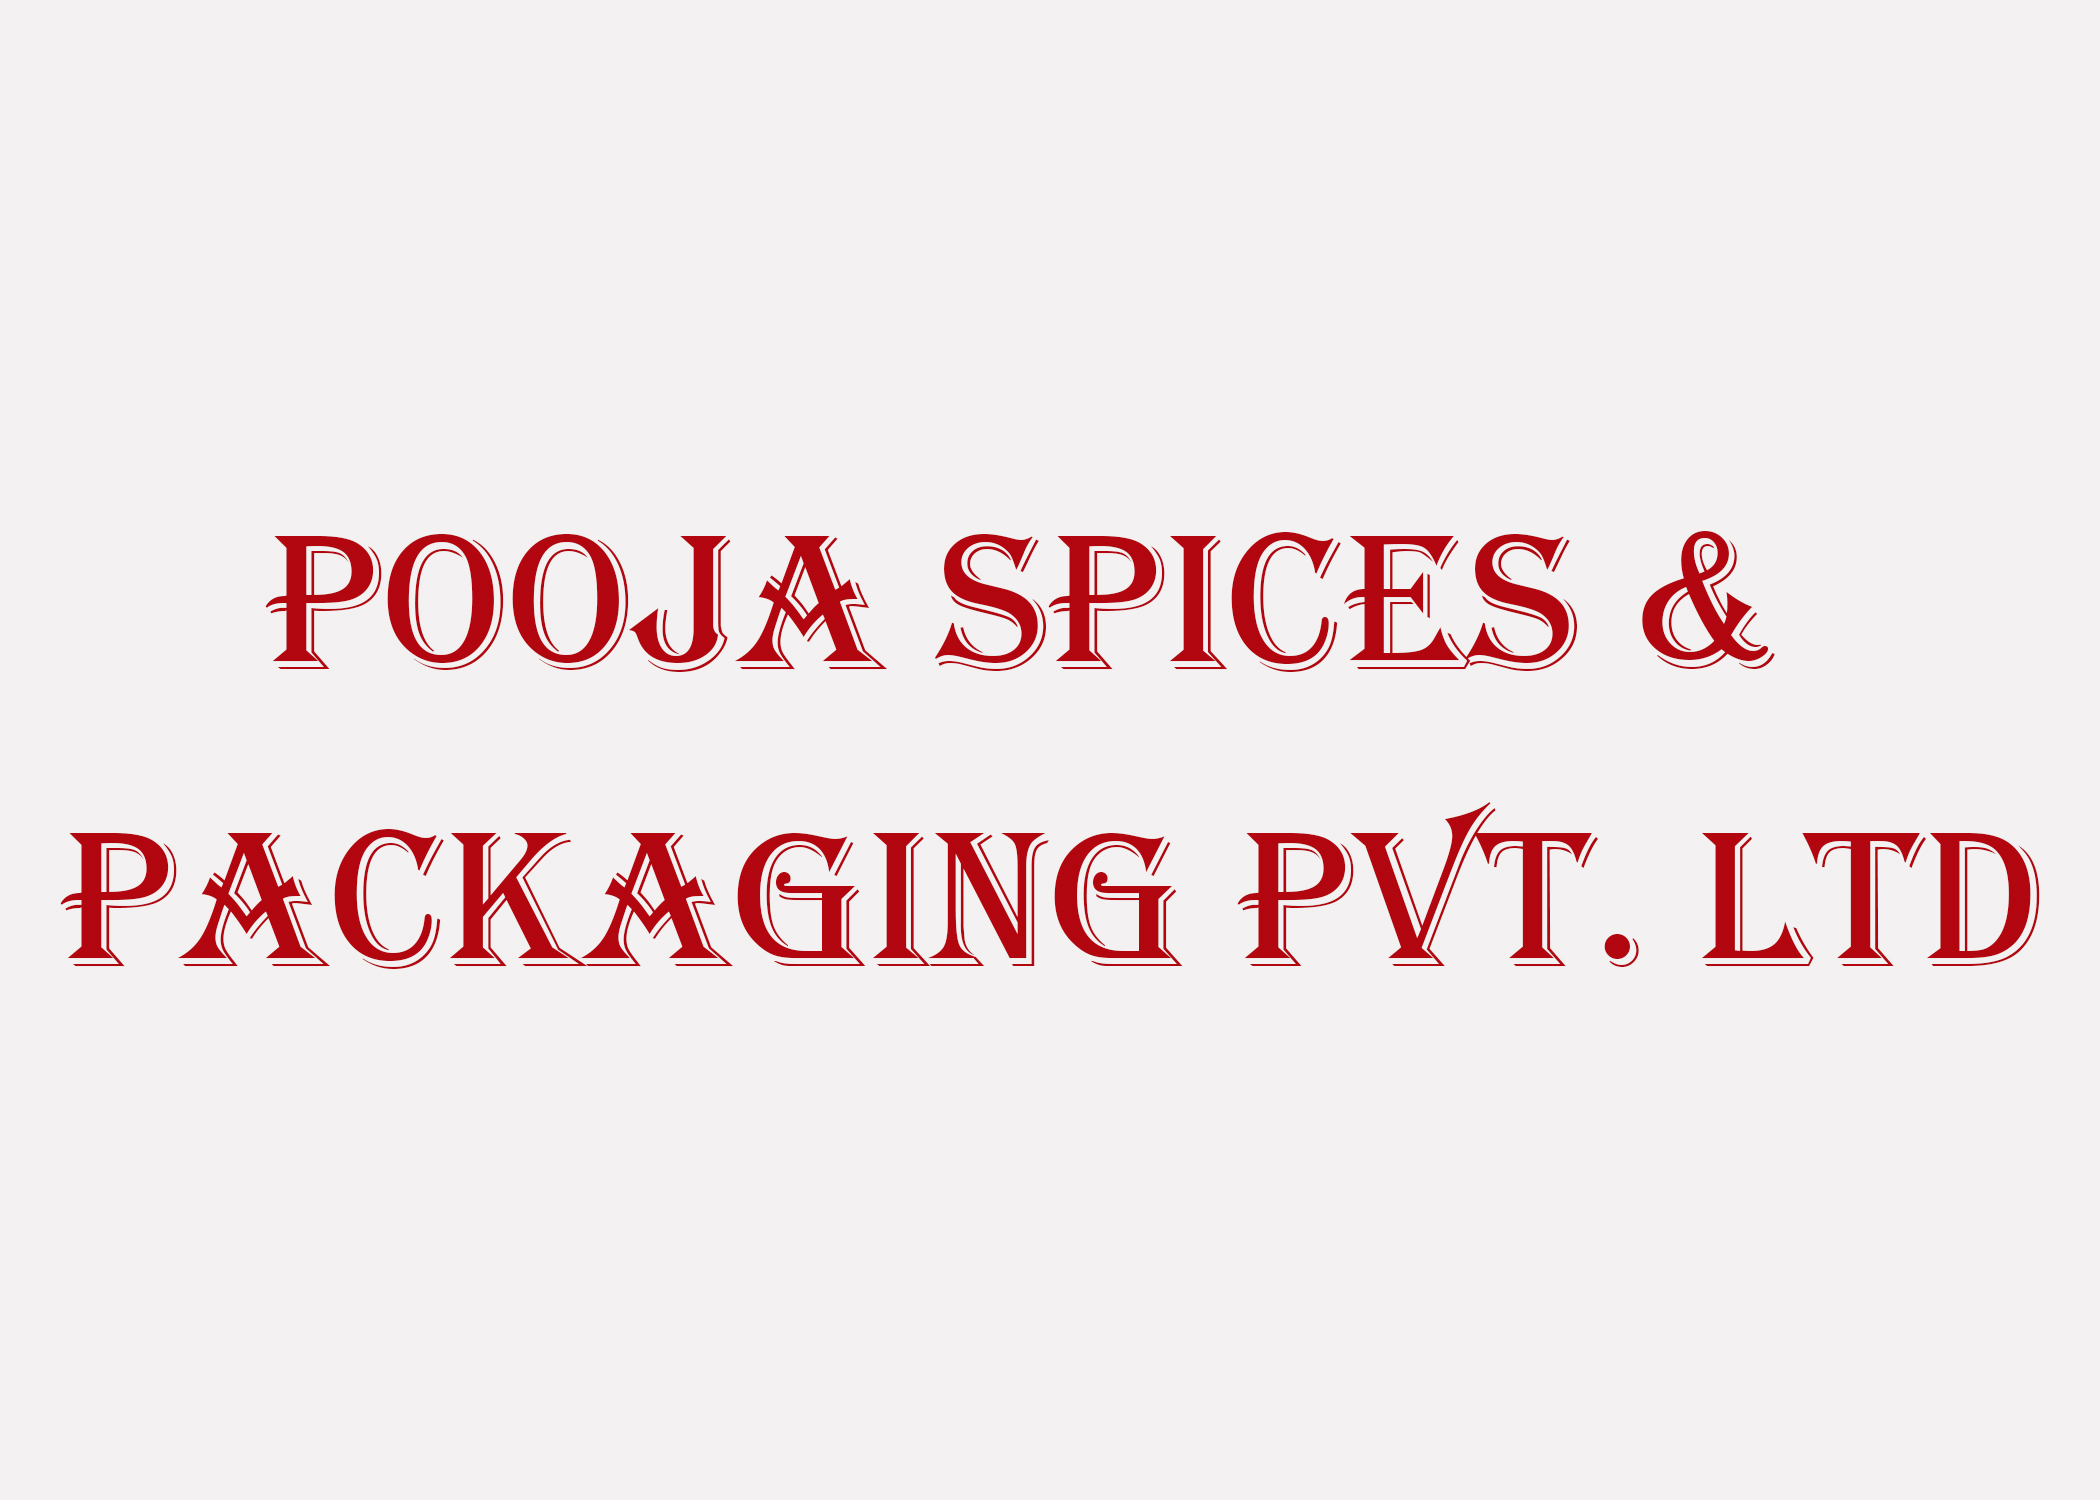 Pooja Spicies and Packaging Pvt.Ltd